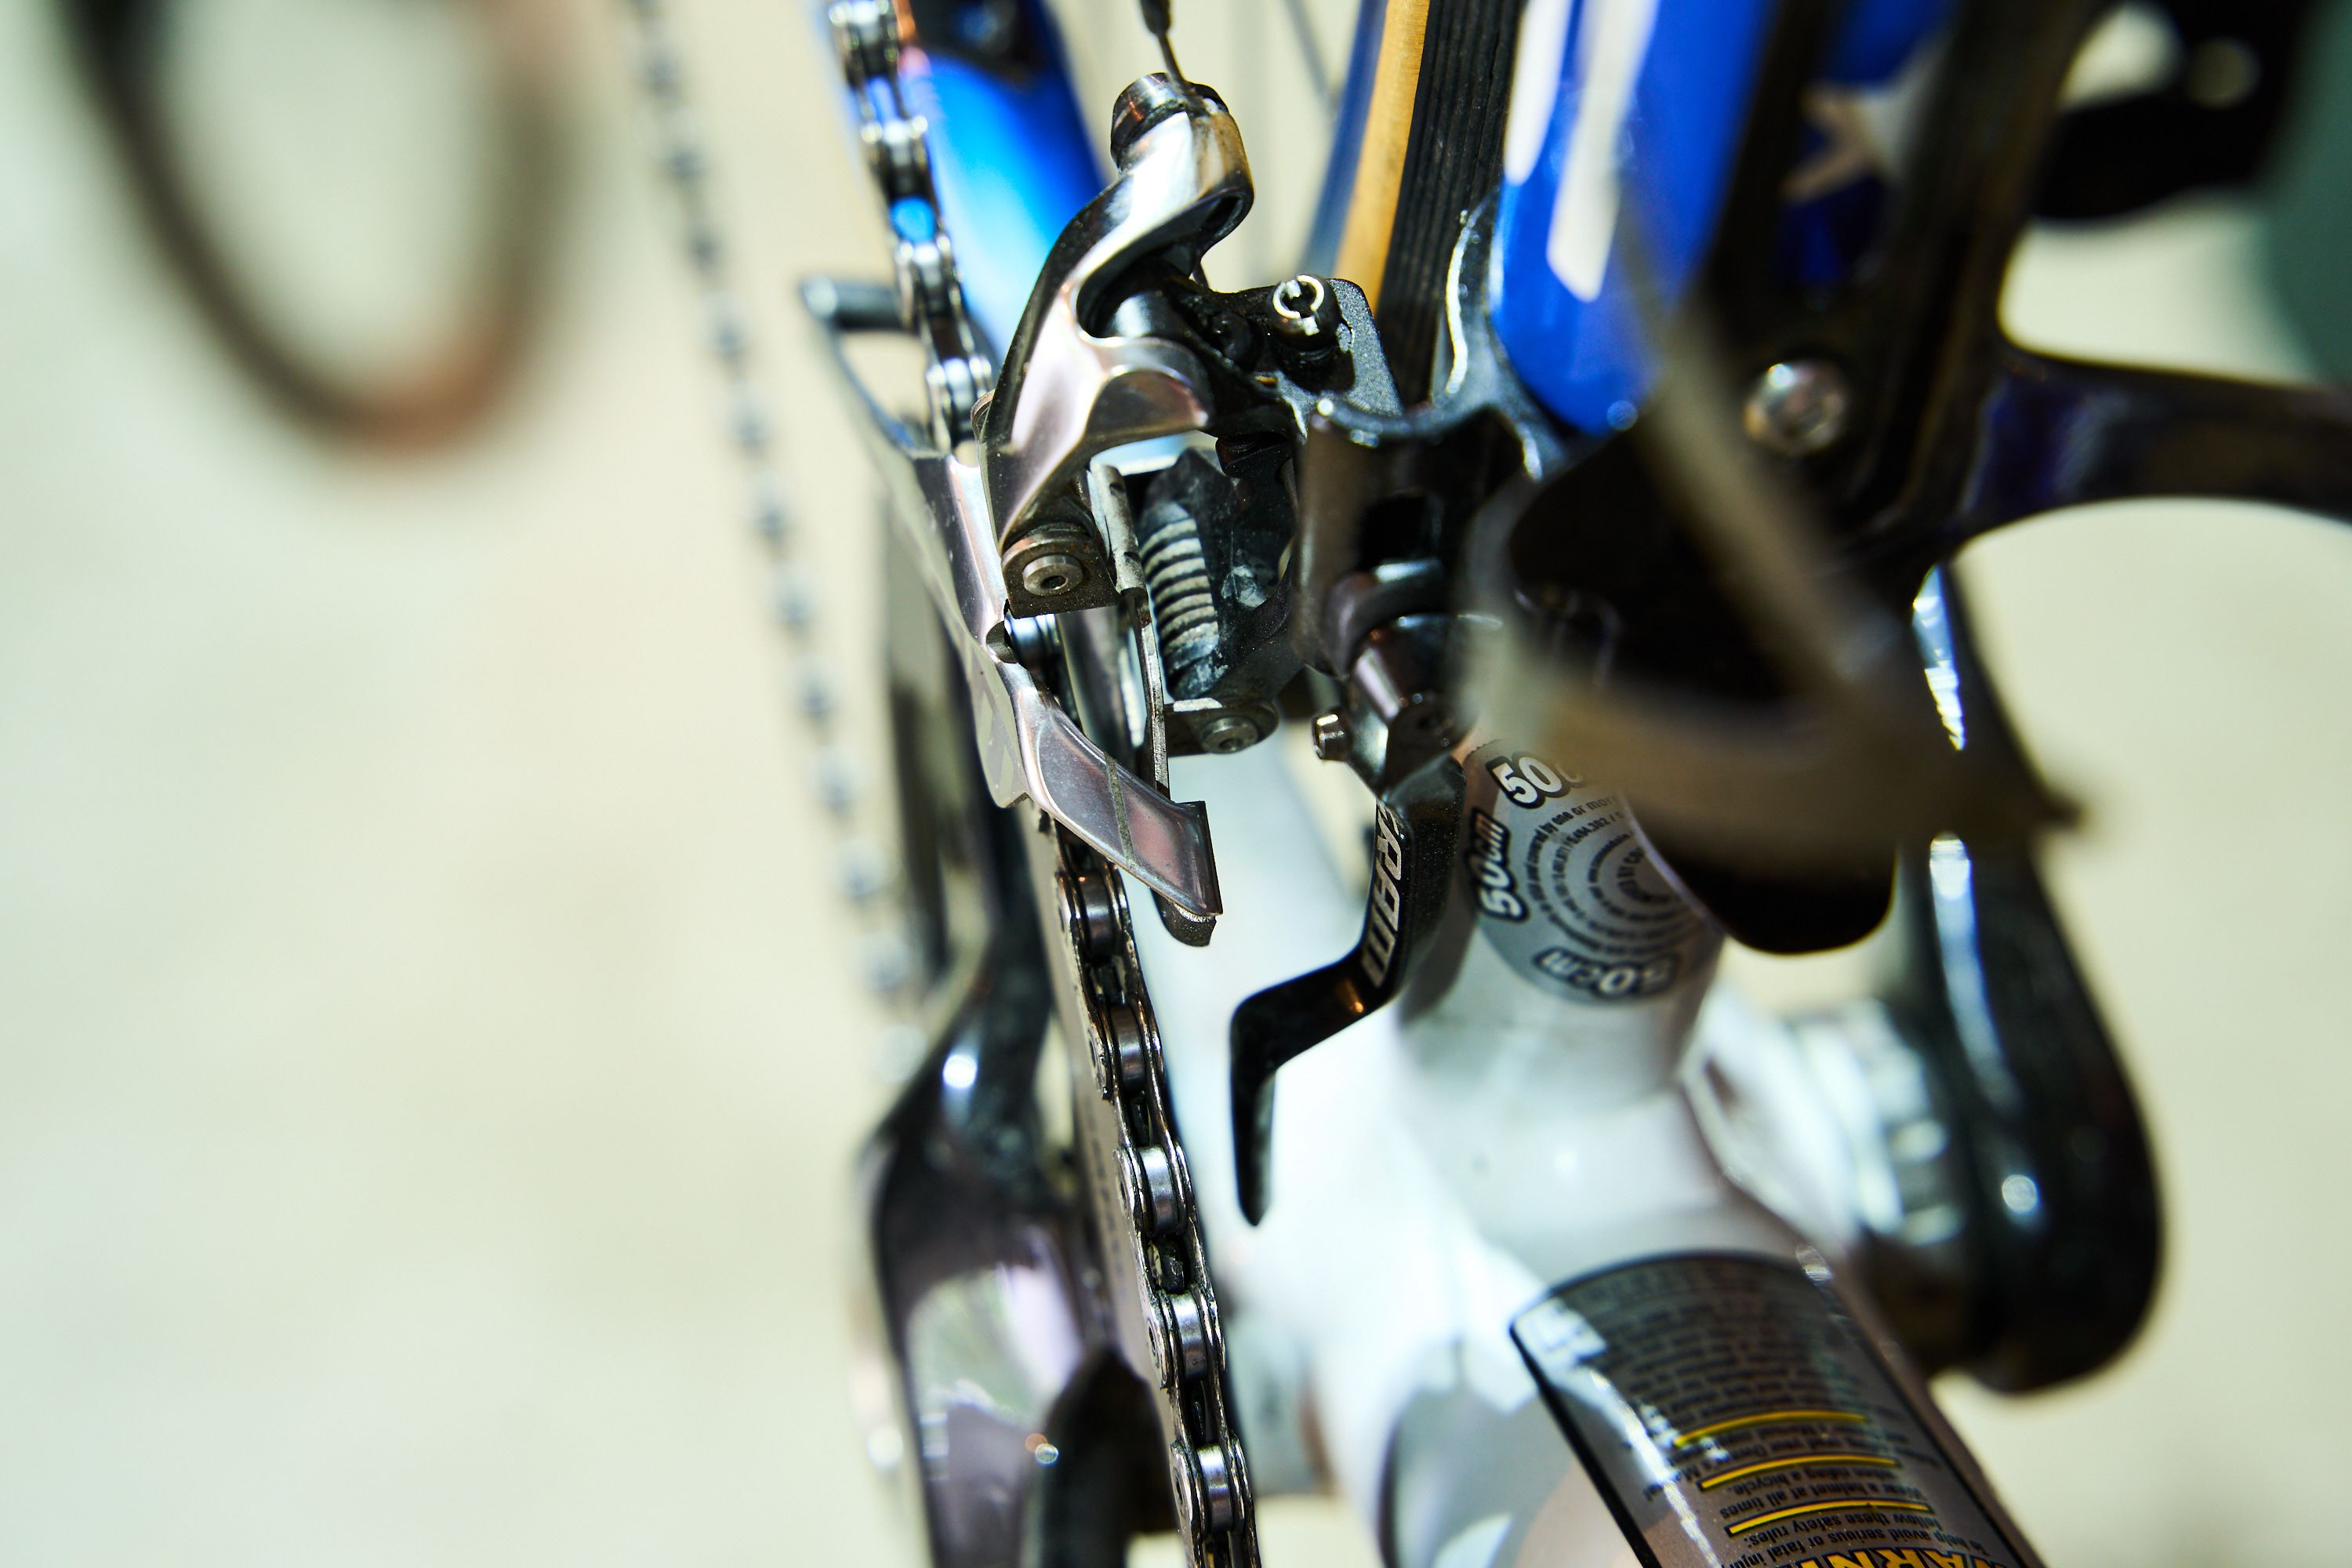 This Sram derailleur has a line printed on the cage to aid in alignment.